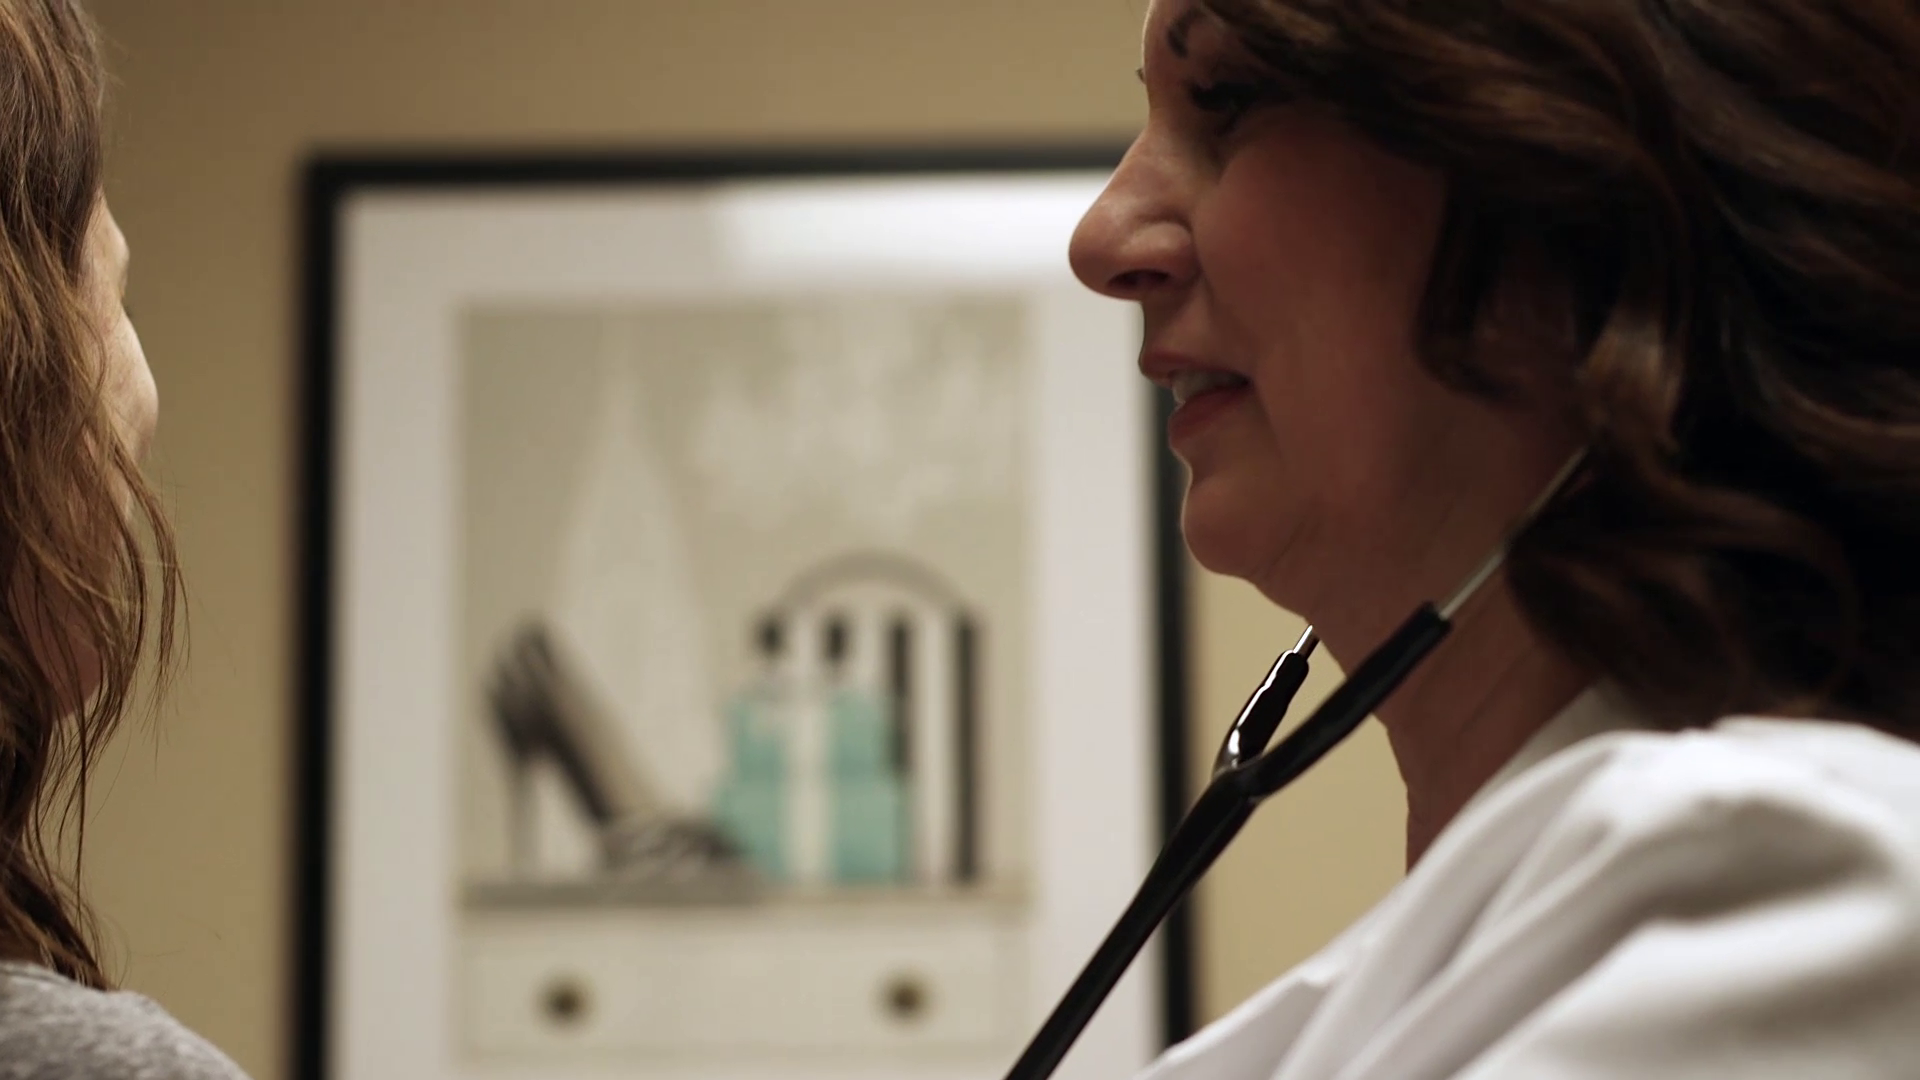 Dr. Babb talks about her practice